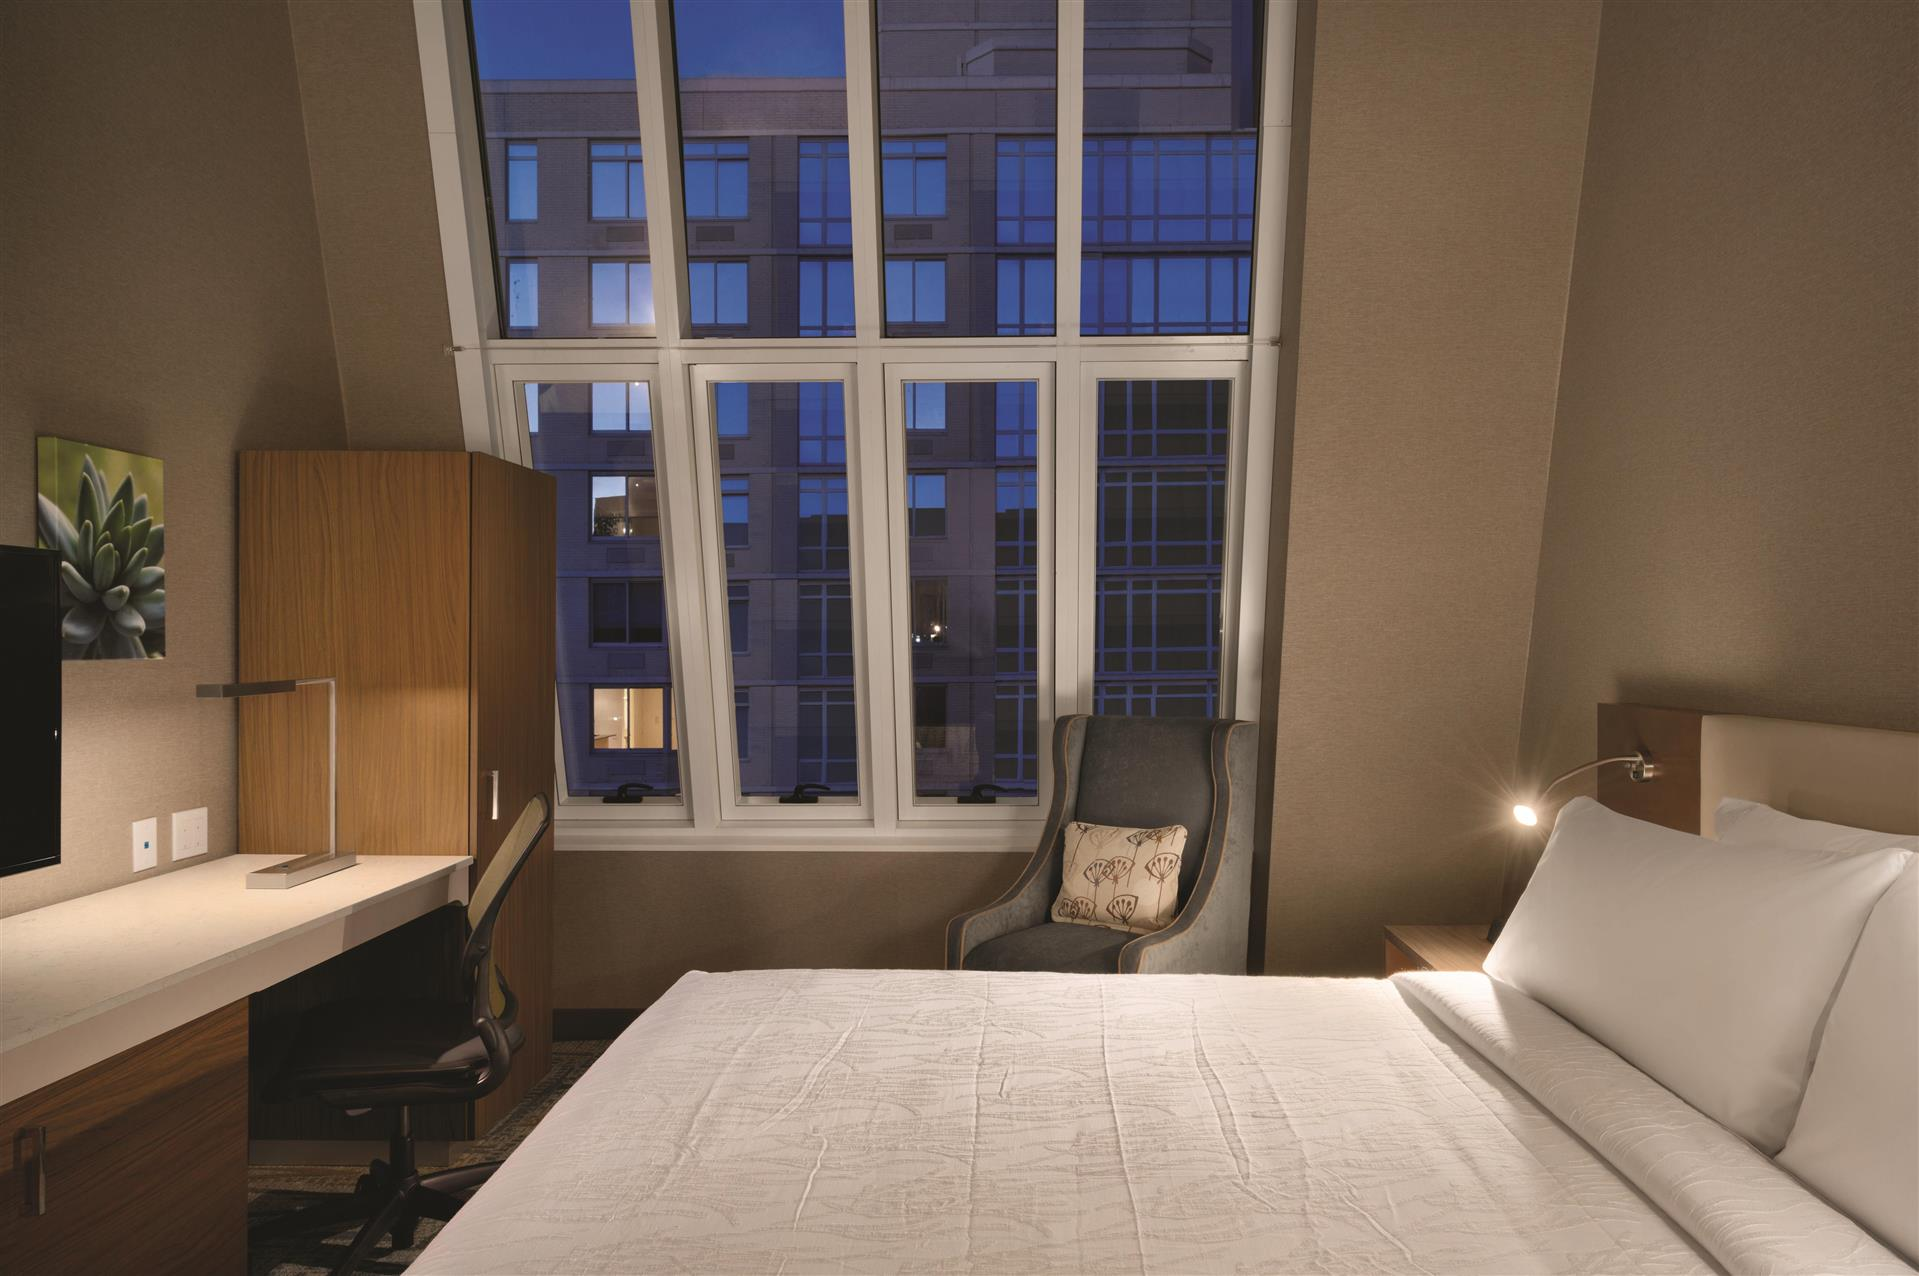 Meetings & Events at Hilton Garden Inn New York Times Square South